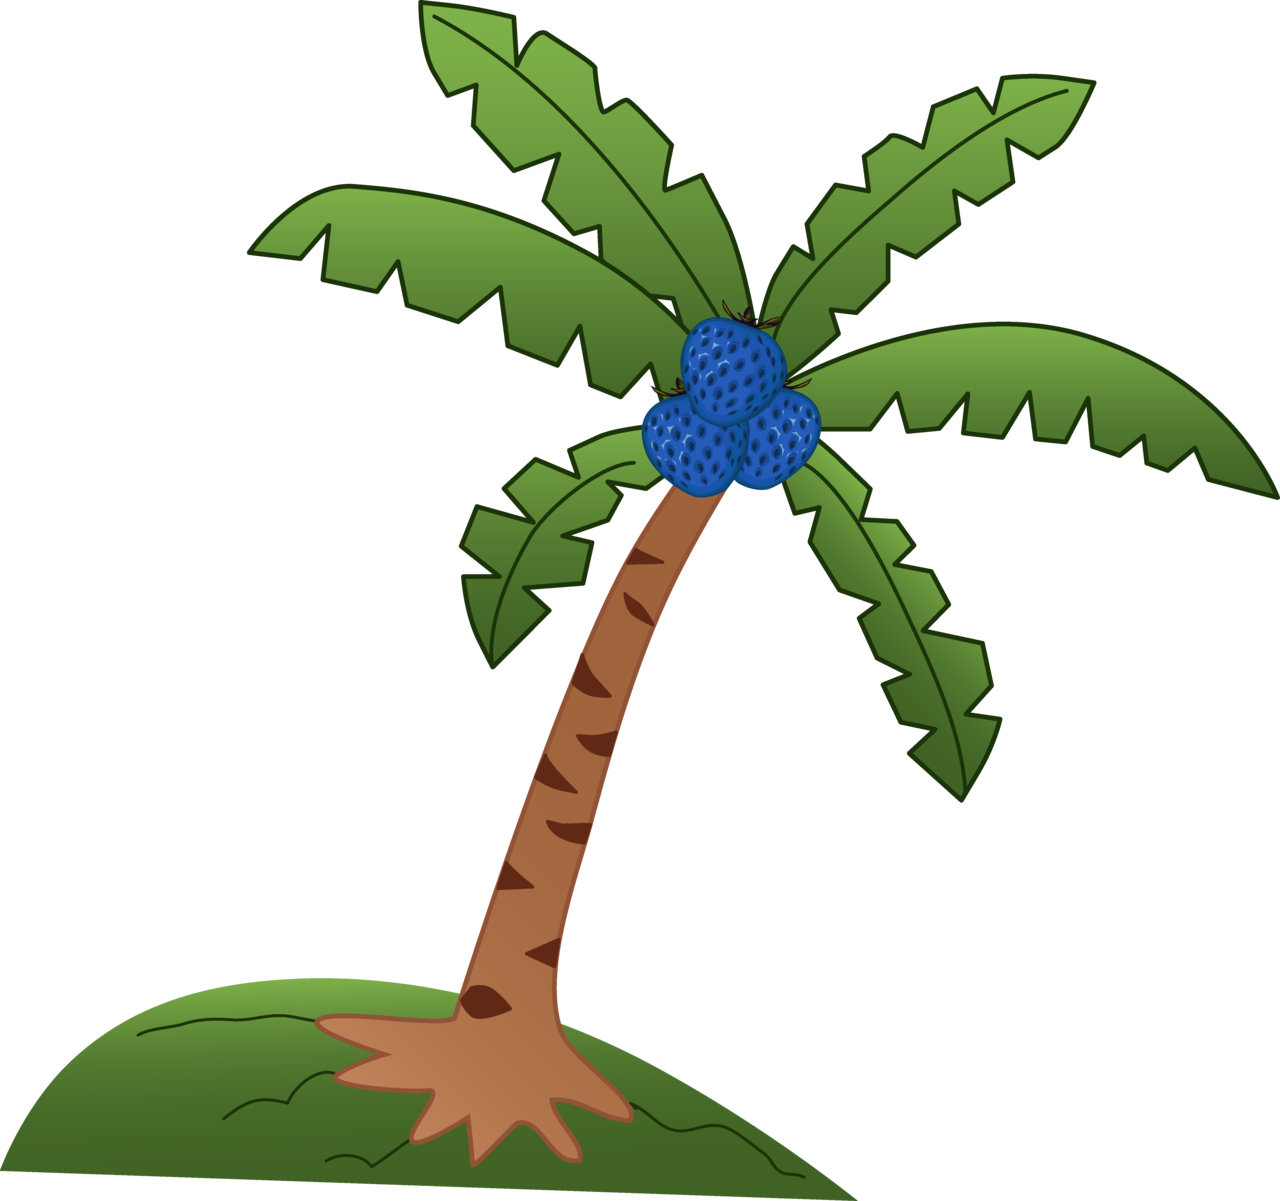 Palm tree and hammock clipart image royalty free stock  image royalty free stock